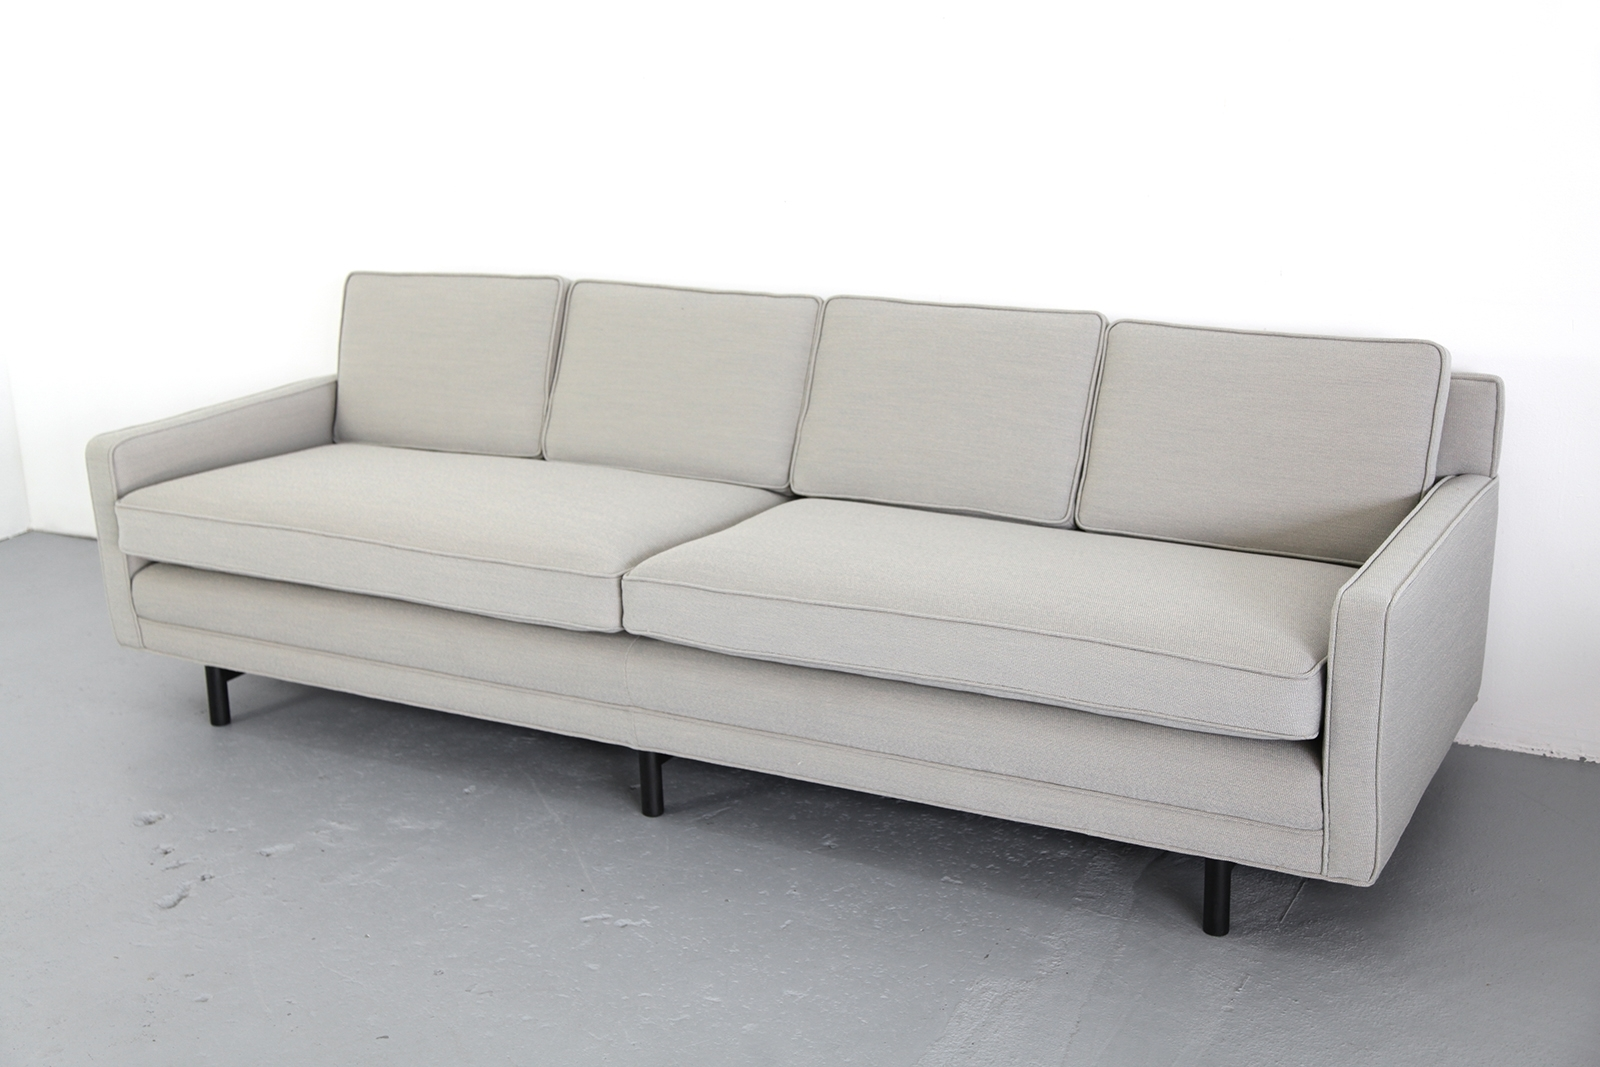 4 Seater Sofas In Most Recent 4 Seater Sofapaul Mccobb For Directional For Sale At Pamono (View 2 of 15)